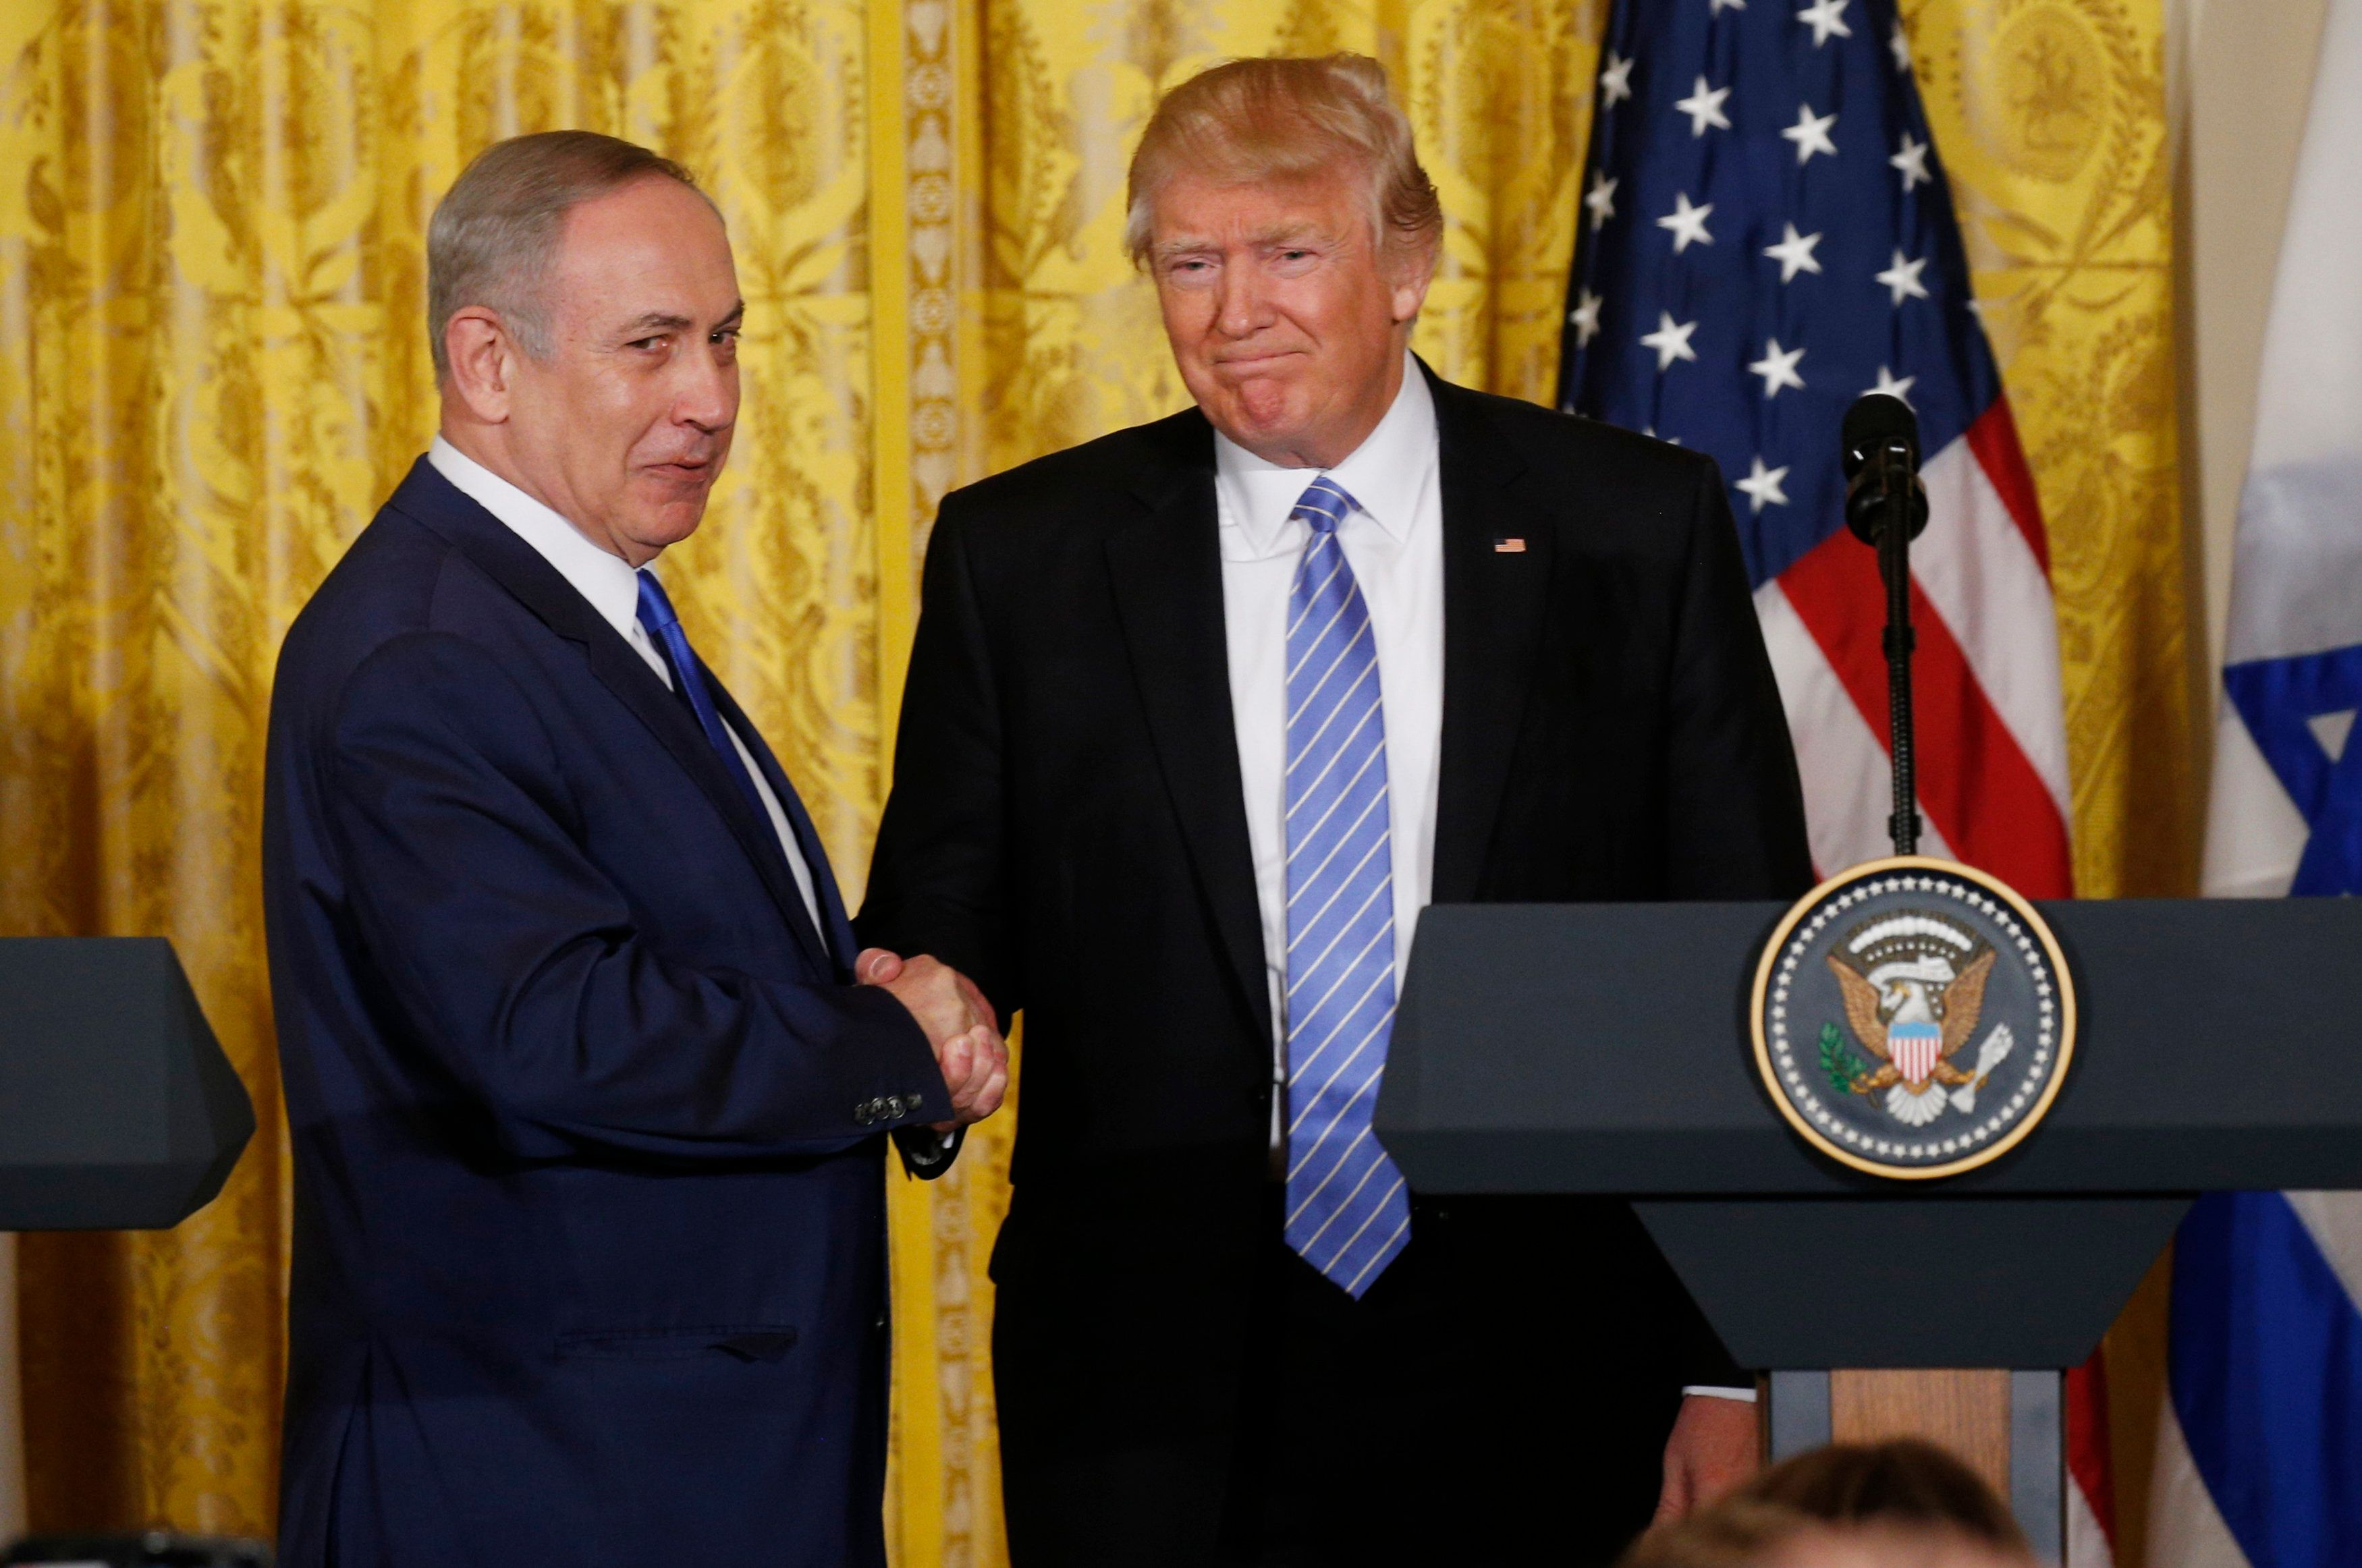 President Donald Trump greets Israeli Prime Minister Benjamin Netanyahu after a joint news conference at the White House on F